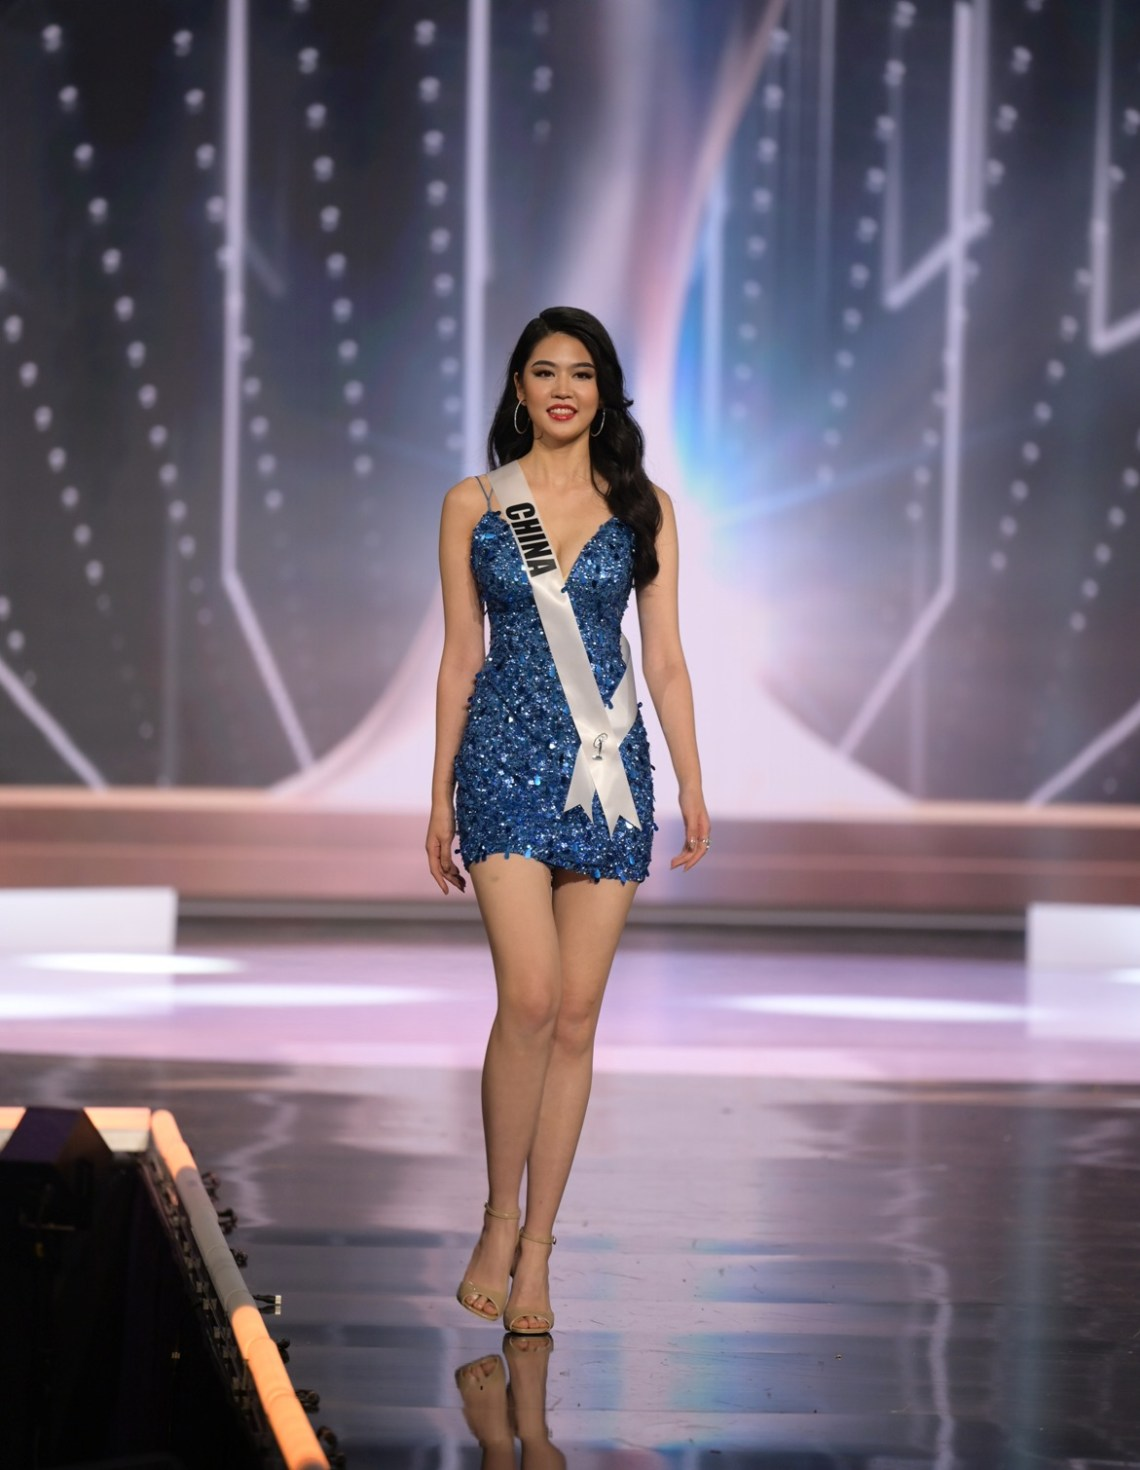 Jiaxin Sun, Miss Universe China 2020 on stage in fashion by Sherri Hill during the opening of the MISS UNIVERSE® Preliminary Competition at the Seminole Hard Rock Hotel & Casino in Hollywood, Florida on May 14, 2021. Tune in to the live telecast on FYI and Telemundo on Sunday, May 16 at 8:00 PM ET to see who will become the next Miss Universe.